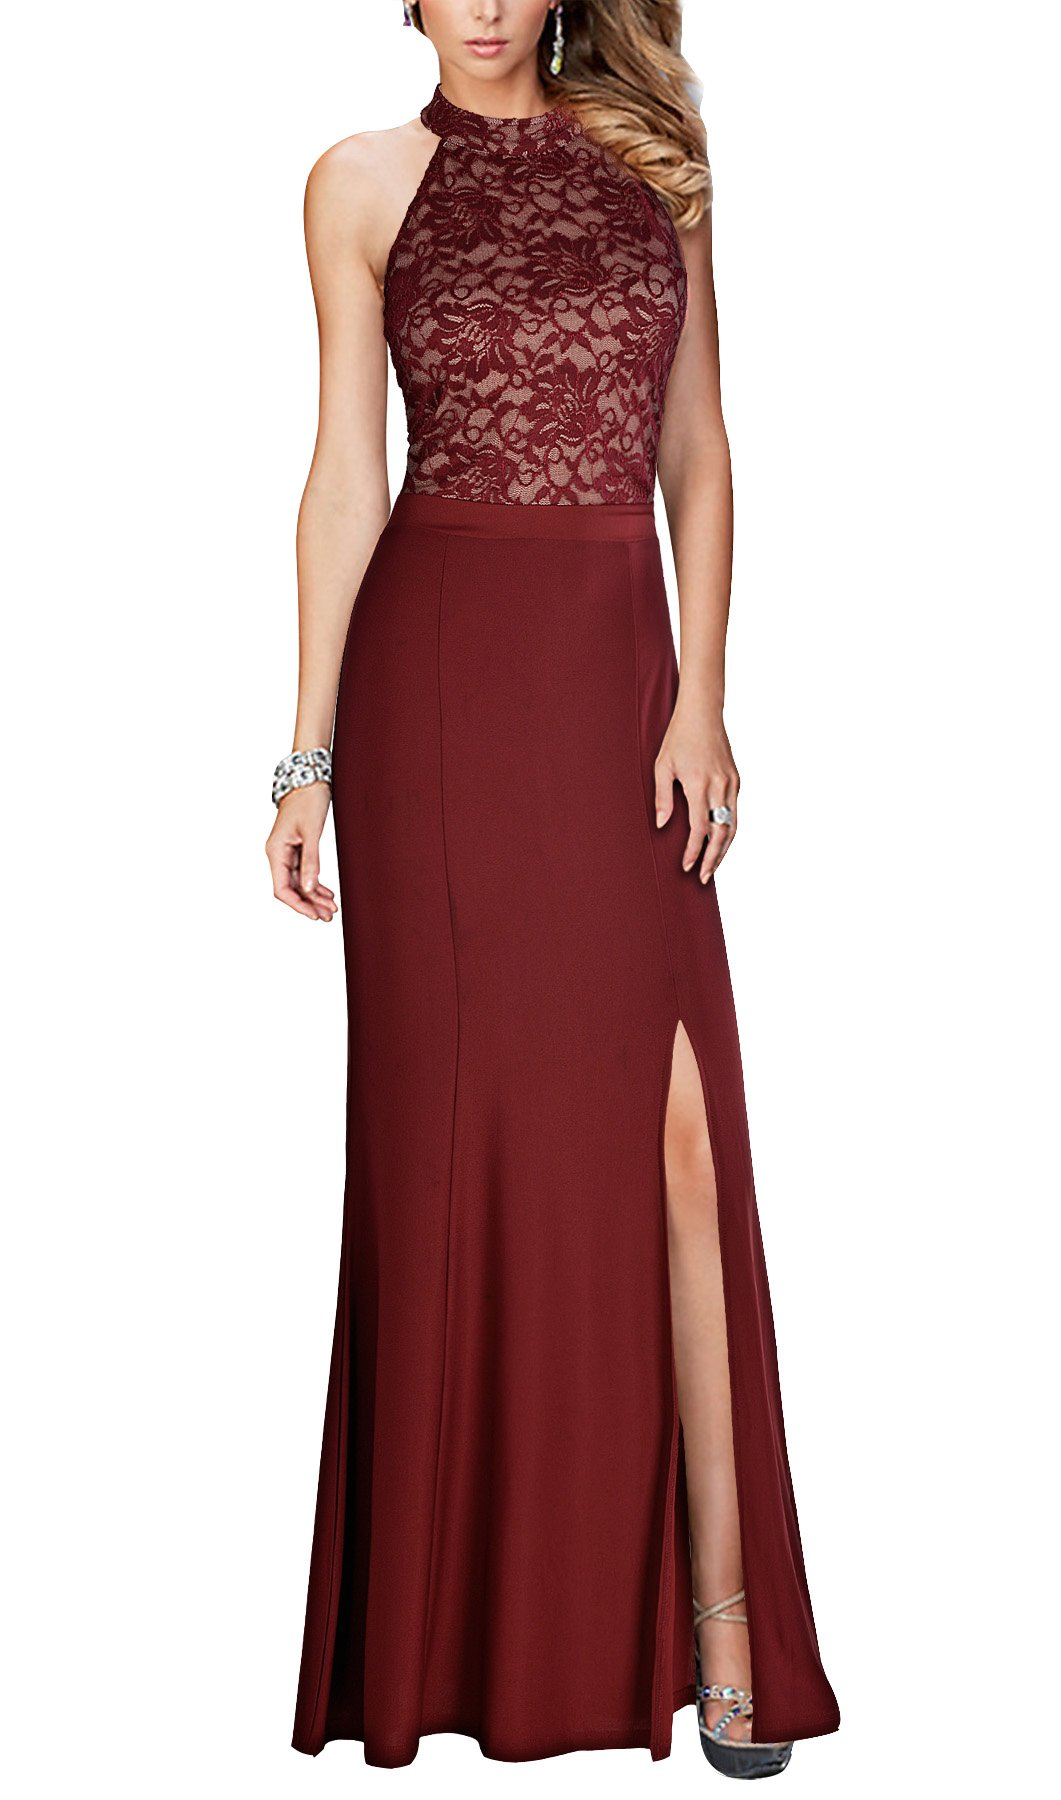 Prom Dresses - Women's Casual Deep- V Neck Sleeveless Vintage Wedding Maxi Dress